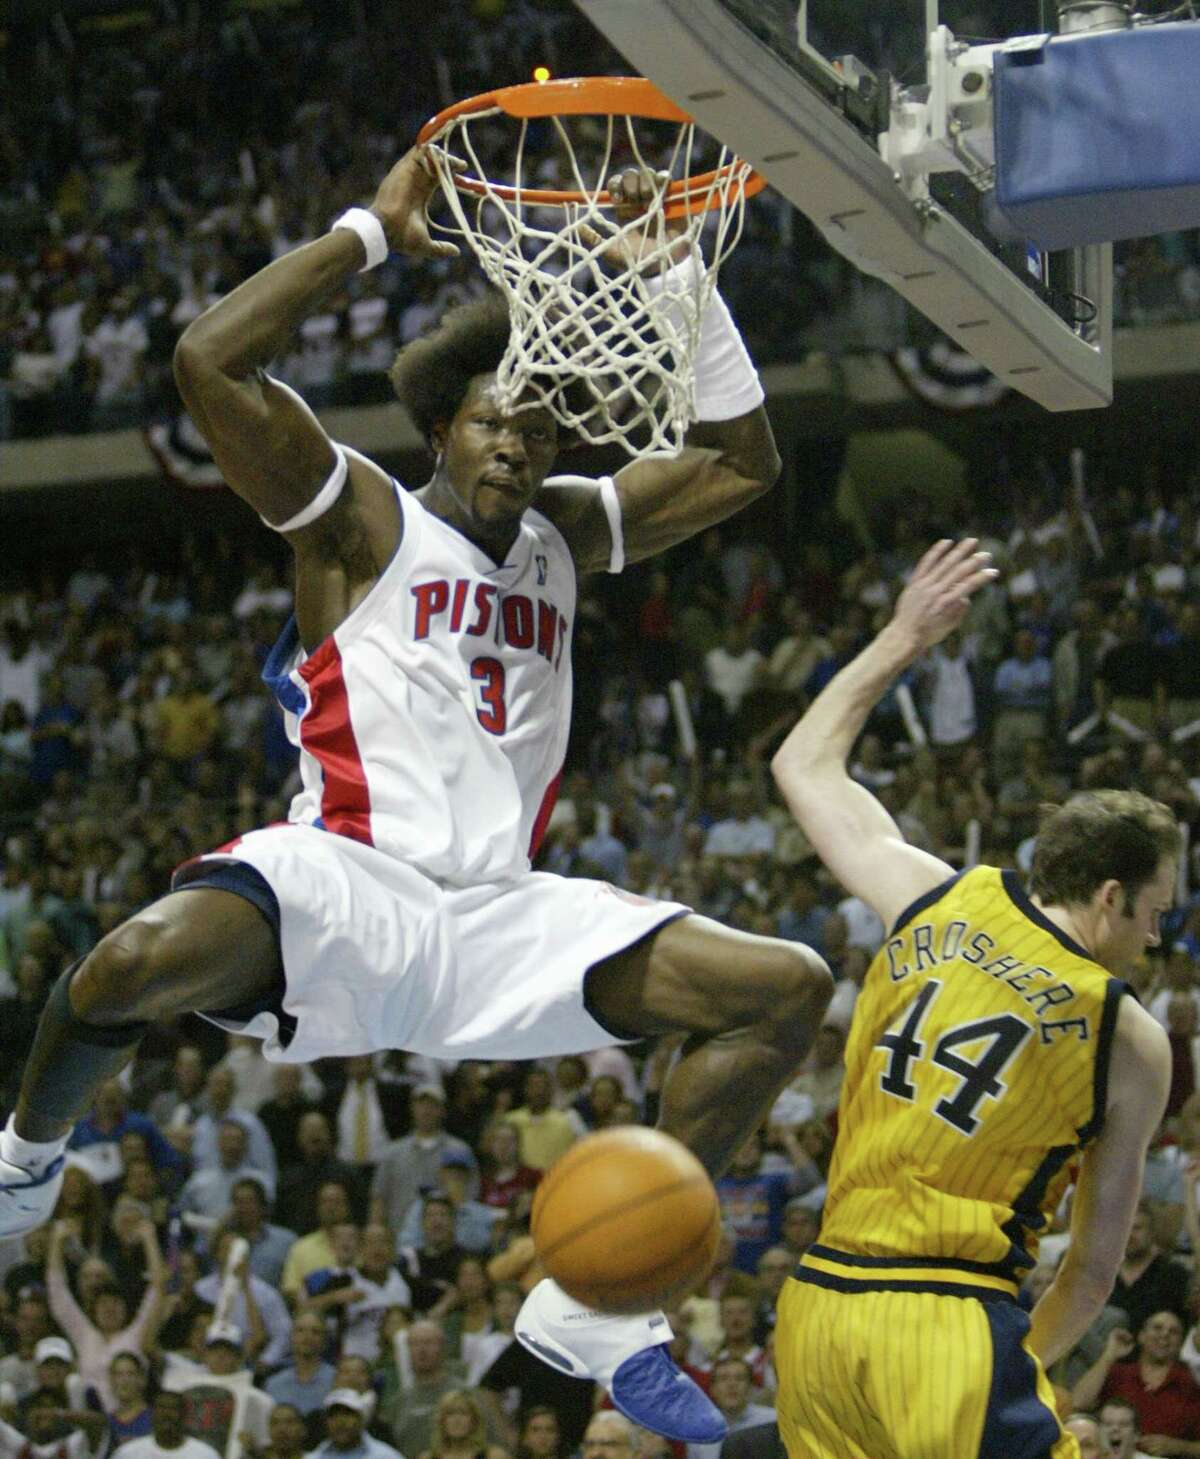 KRT SPORTS STORY SLUGGED: PACERS-PISTONS KRT PHOTOGRAPH BY KIRTHMON F. DOZIER/DETROIT FREE PRESS (June 1) Detroit's Ben Wallace slams the ball over Indiana's Austin Croshere to seal his team's 69-65 win in Game 6 of their NBA Eastern Conference Finals at the Palace of Auburn Hills, in Michigan, on Tuesday, June 1, 2004. Pistons will face the Lakers in the NBA Finals. (nk) 2004